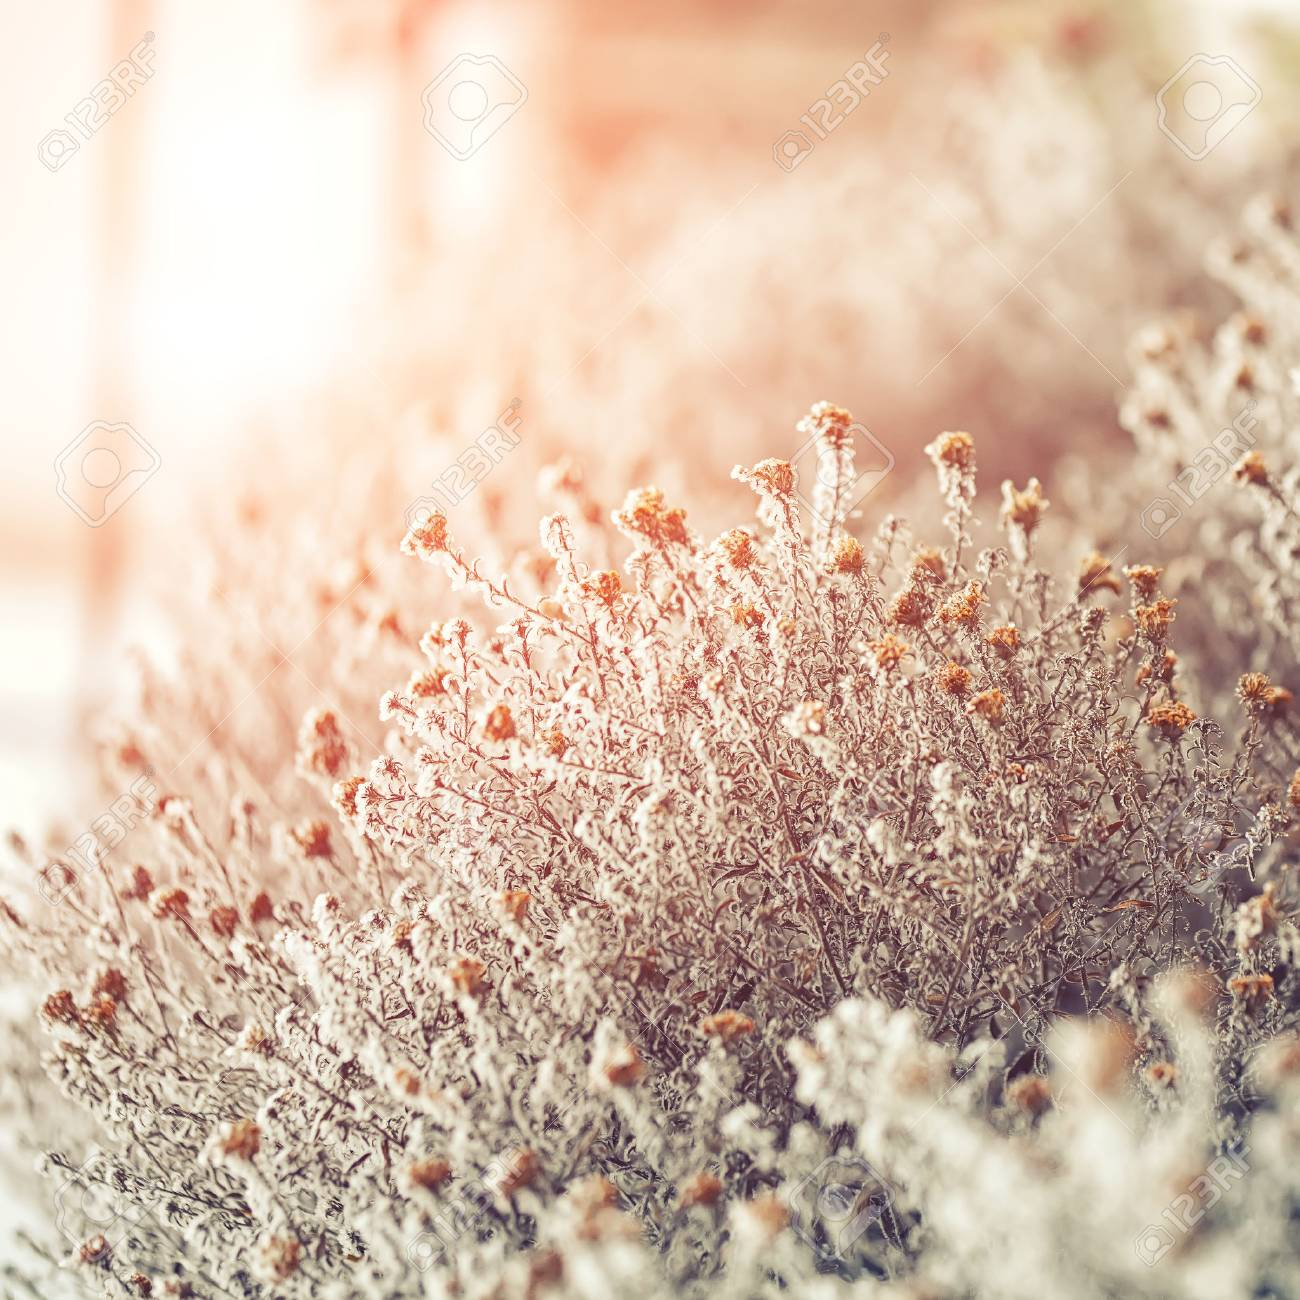 frozen flowers. frost on flowers. Group of flowers at sunset - 44872578